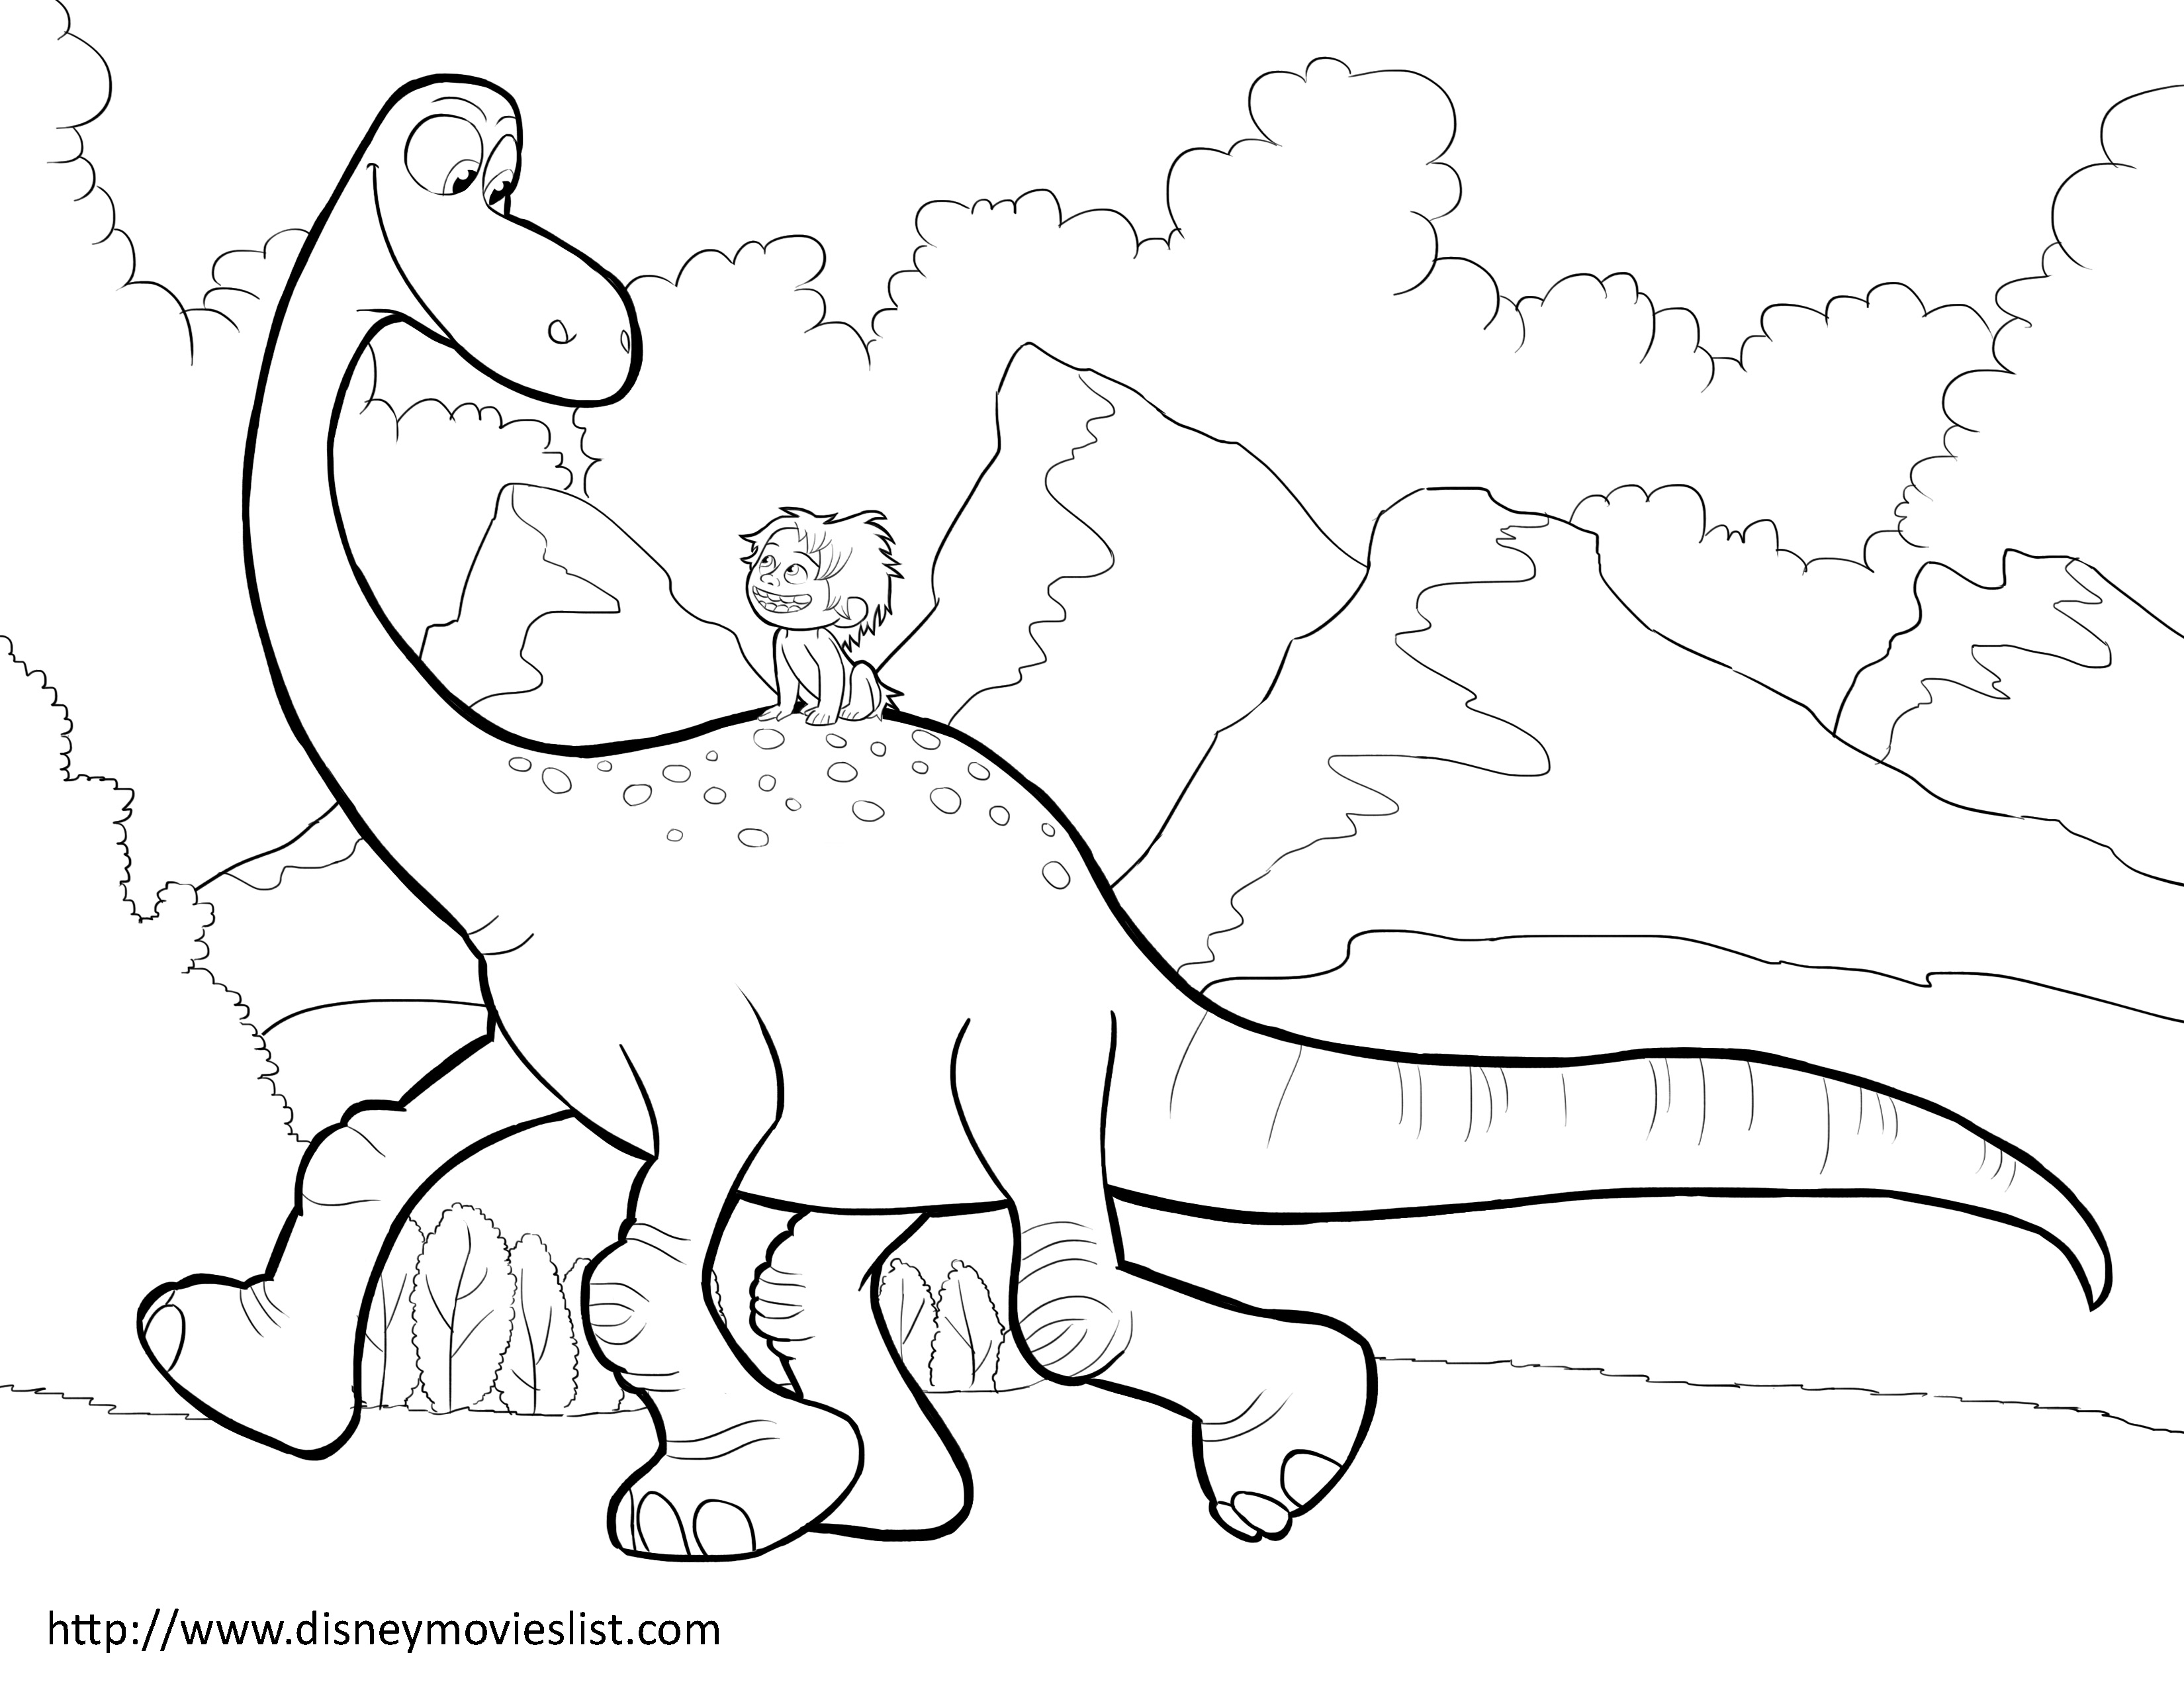 3300x2550 Disney's The Good Dinosaur Arlo And Spot Coloring Page The Good